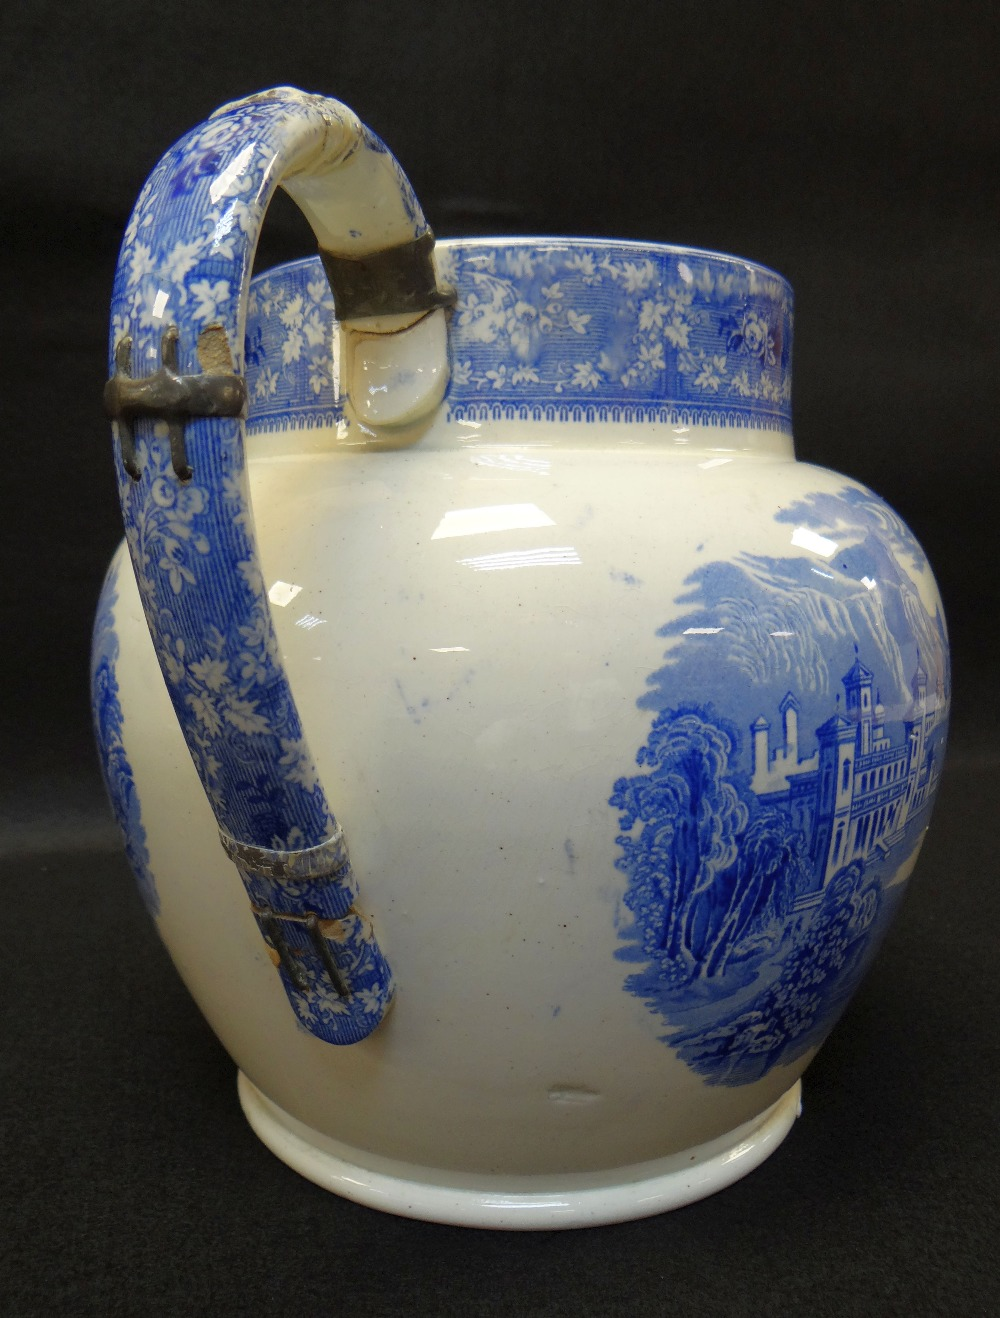 GROUP OF TEN SWANSEA POTTERY BLUE & WHITE TRANSFER JUGS including large 'Milan' transfer jug, - Image 4 of 4